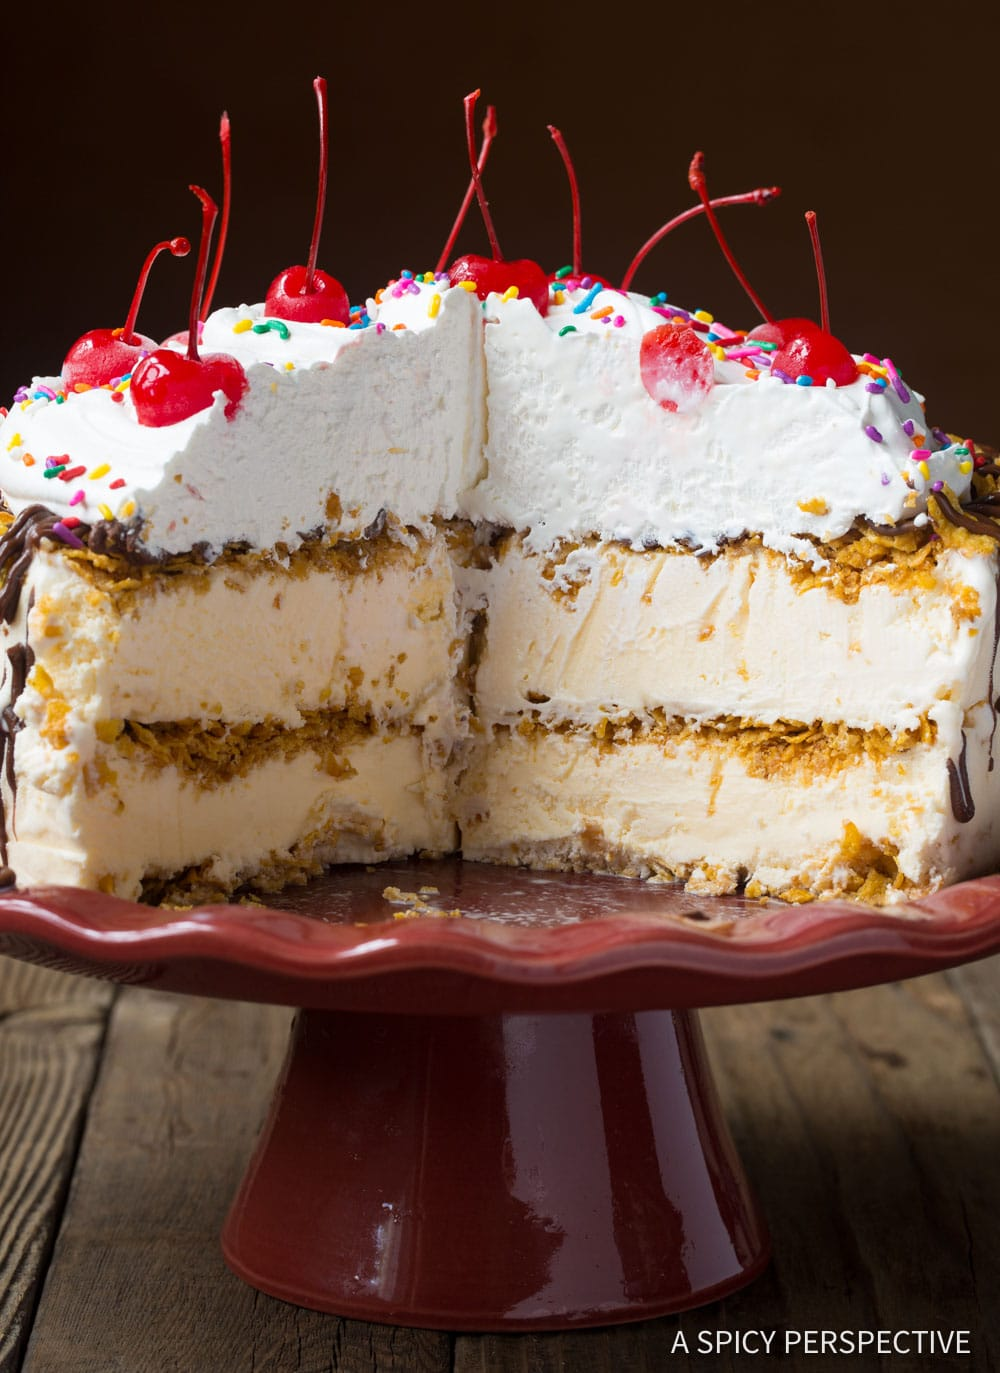 Best Mexican Fried Ice Cream Cake Recipe #ASpicyPerspective